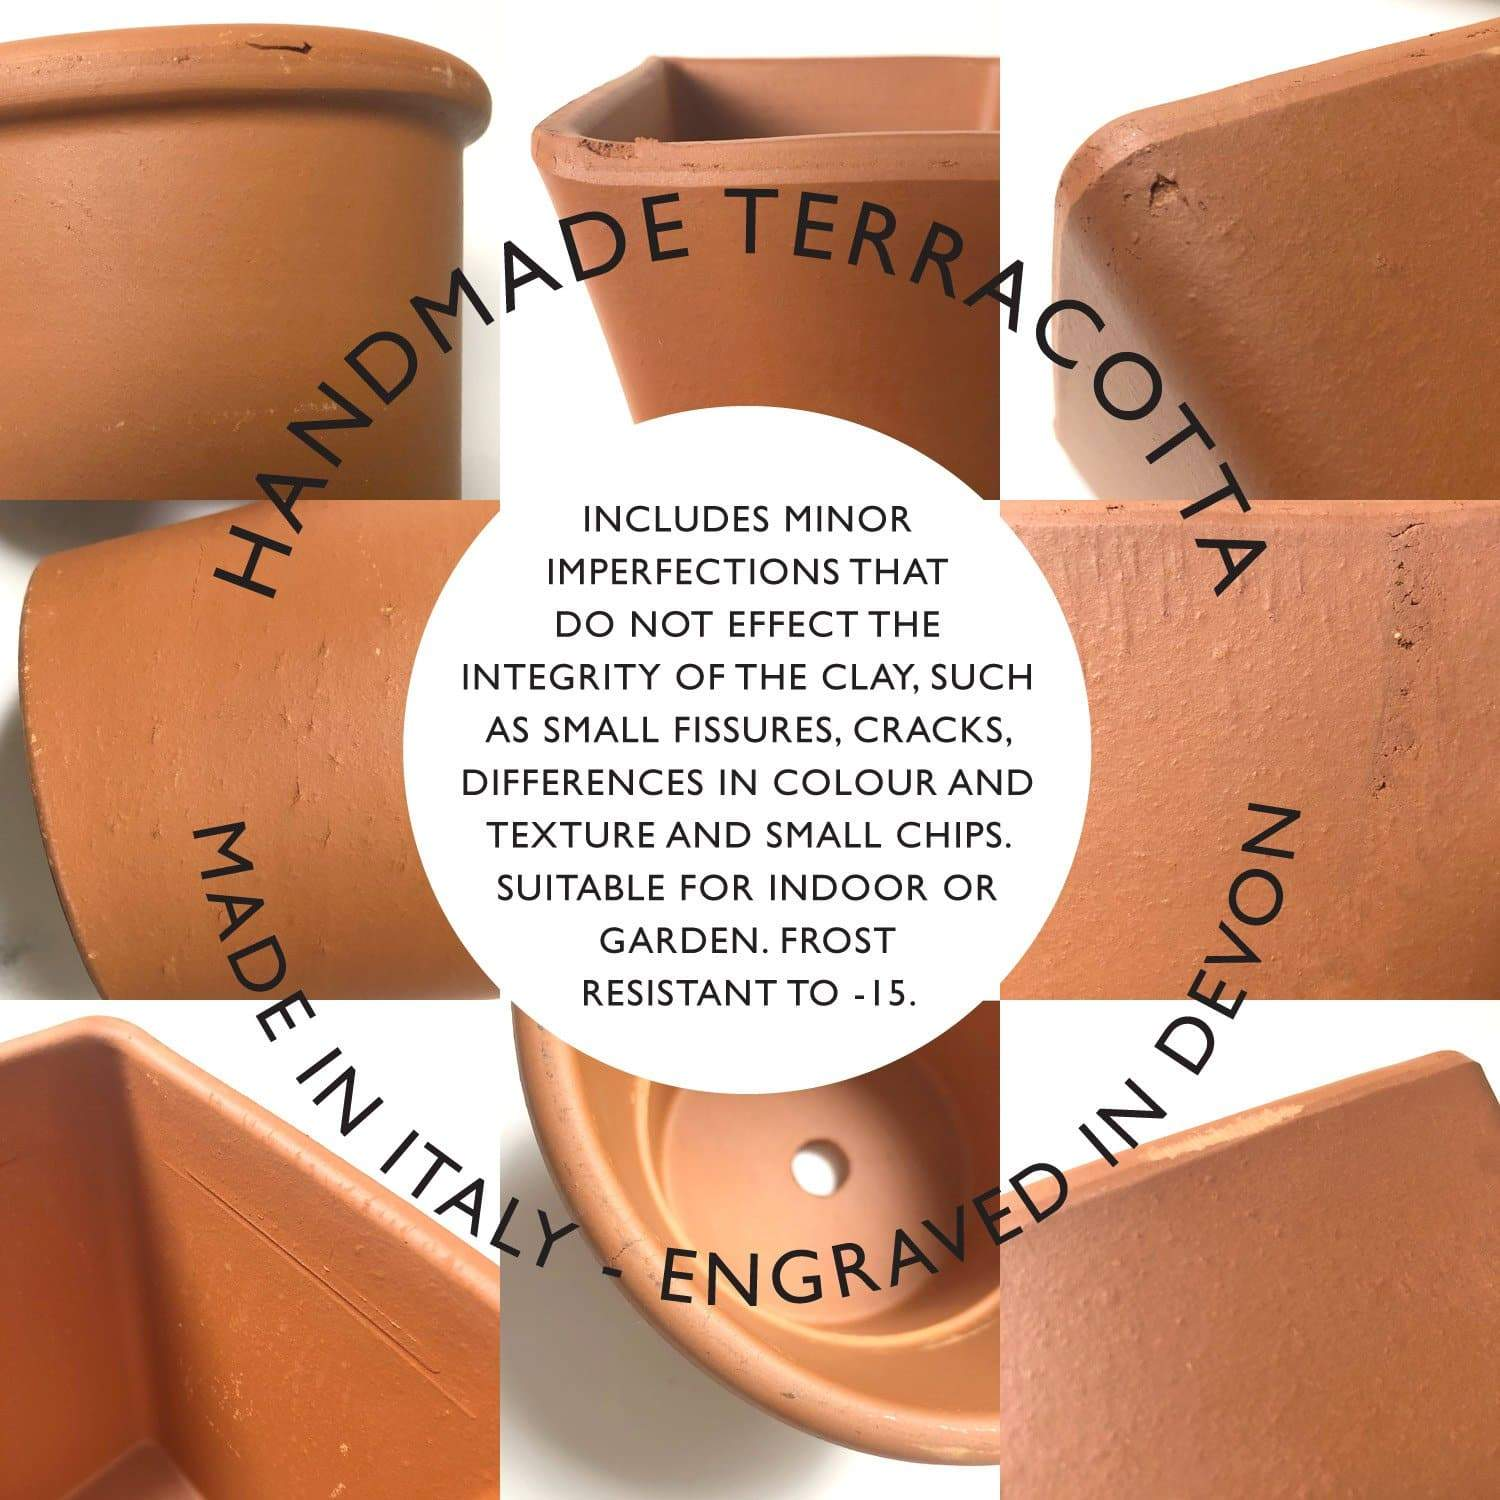 letterfest terracotta Personalised Message Herb Or Flower Pot